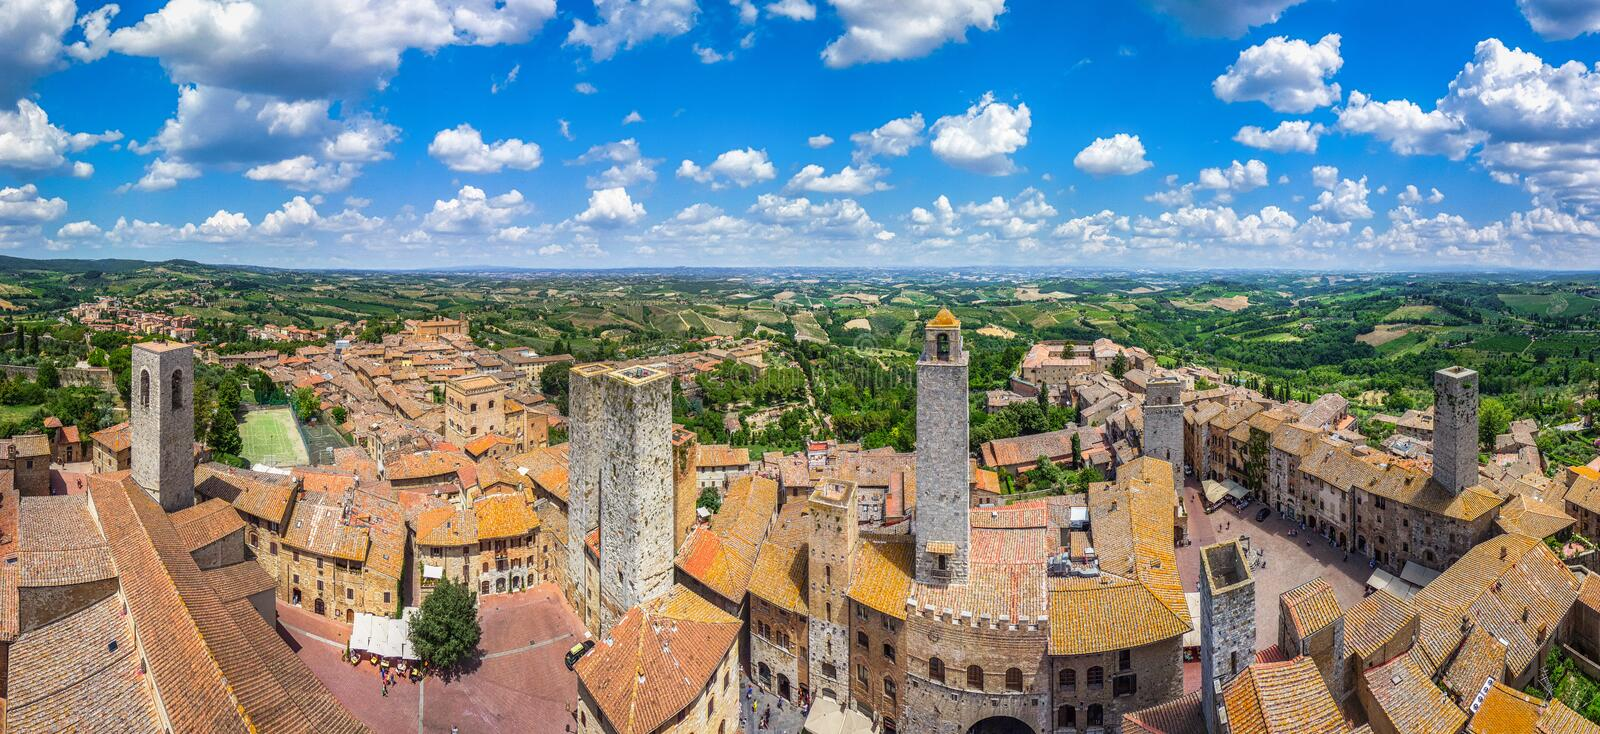 Historic town of San Gimignano with tuscan countryside, Tuscany, Italy royalty free stock image